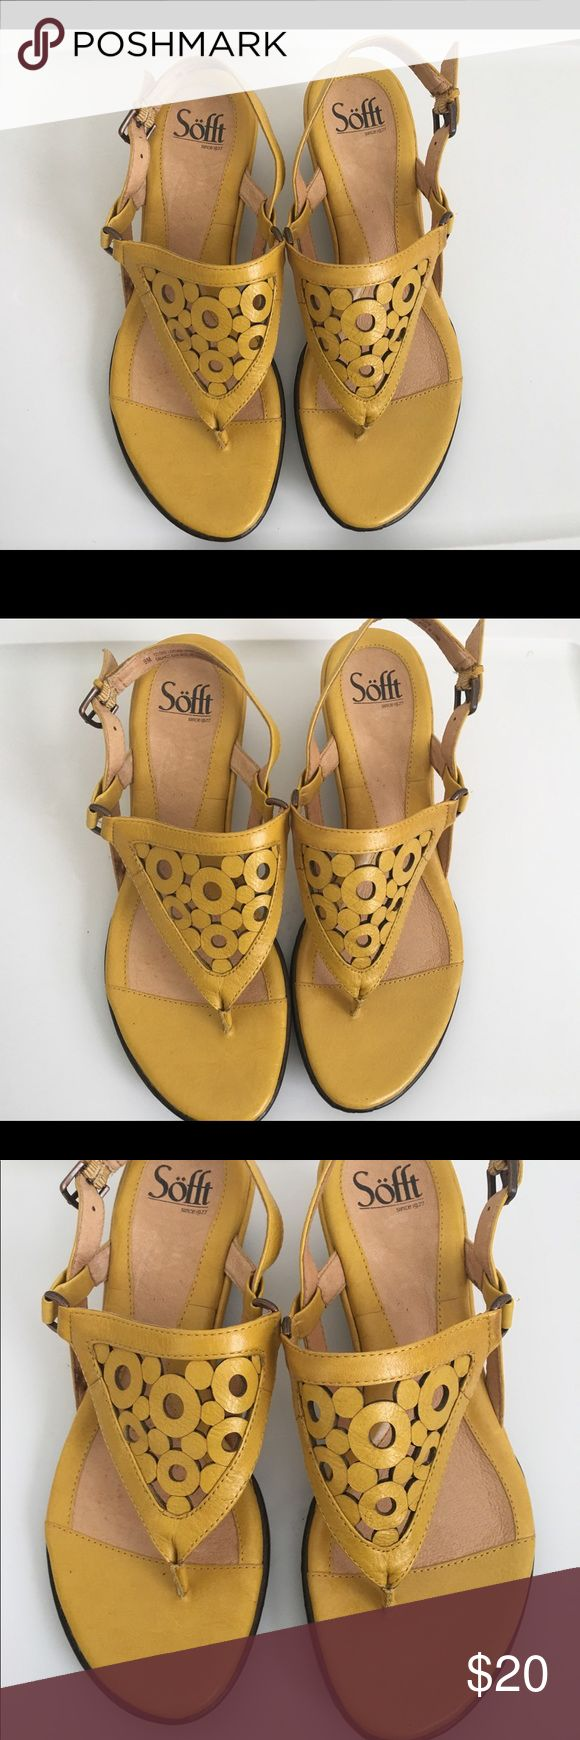 Sofft  Yellow Strap Slide Thong Sandals Women 9M Sofft  Yellow Leather Strappy Slide Thong Sandals Shoes Women 9M Sofft Shoes Sandals